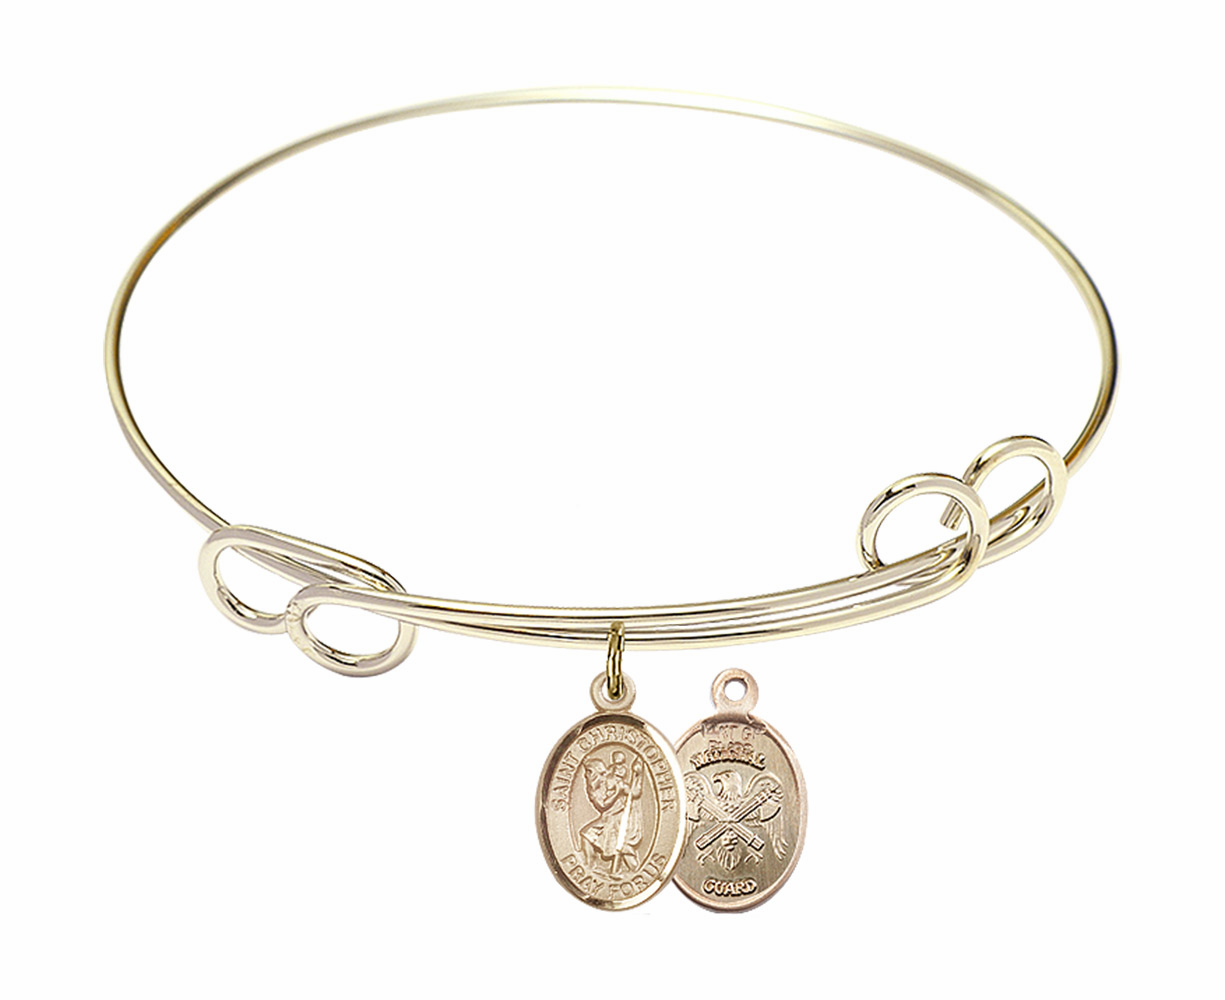 Gold-Filled Twisted St Christopher National Guard Bangle Charm Bracelet by Bliss